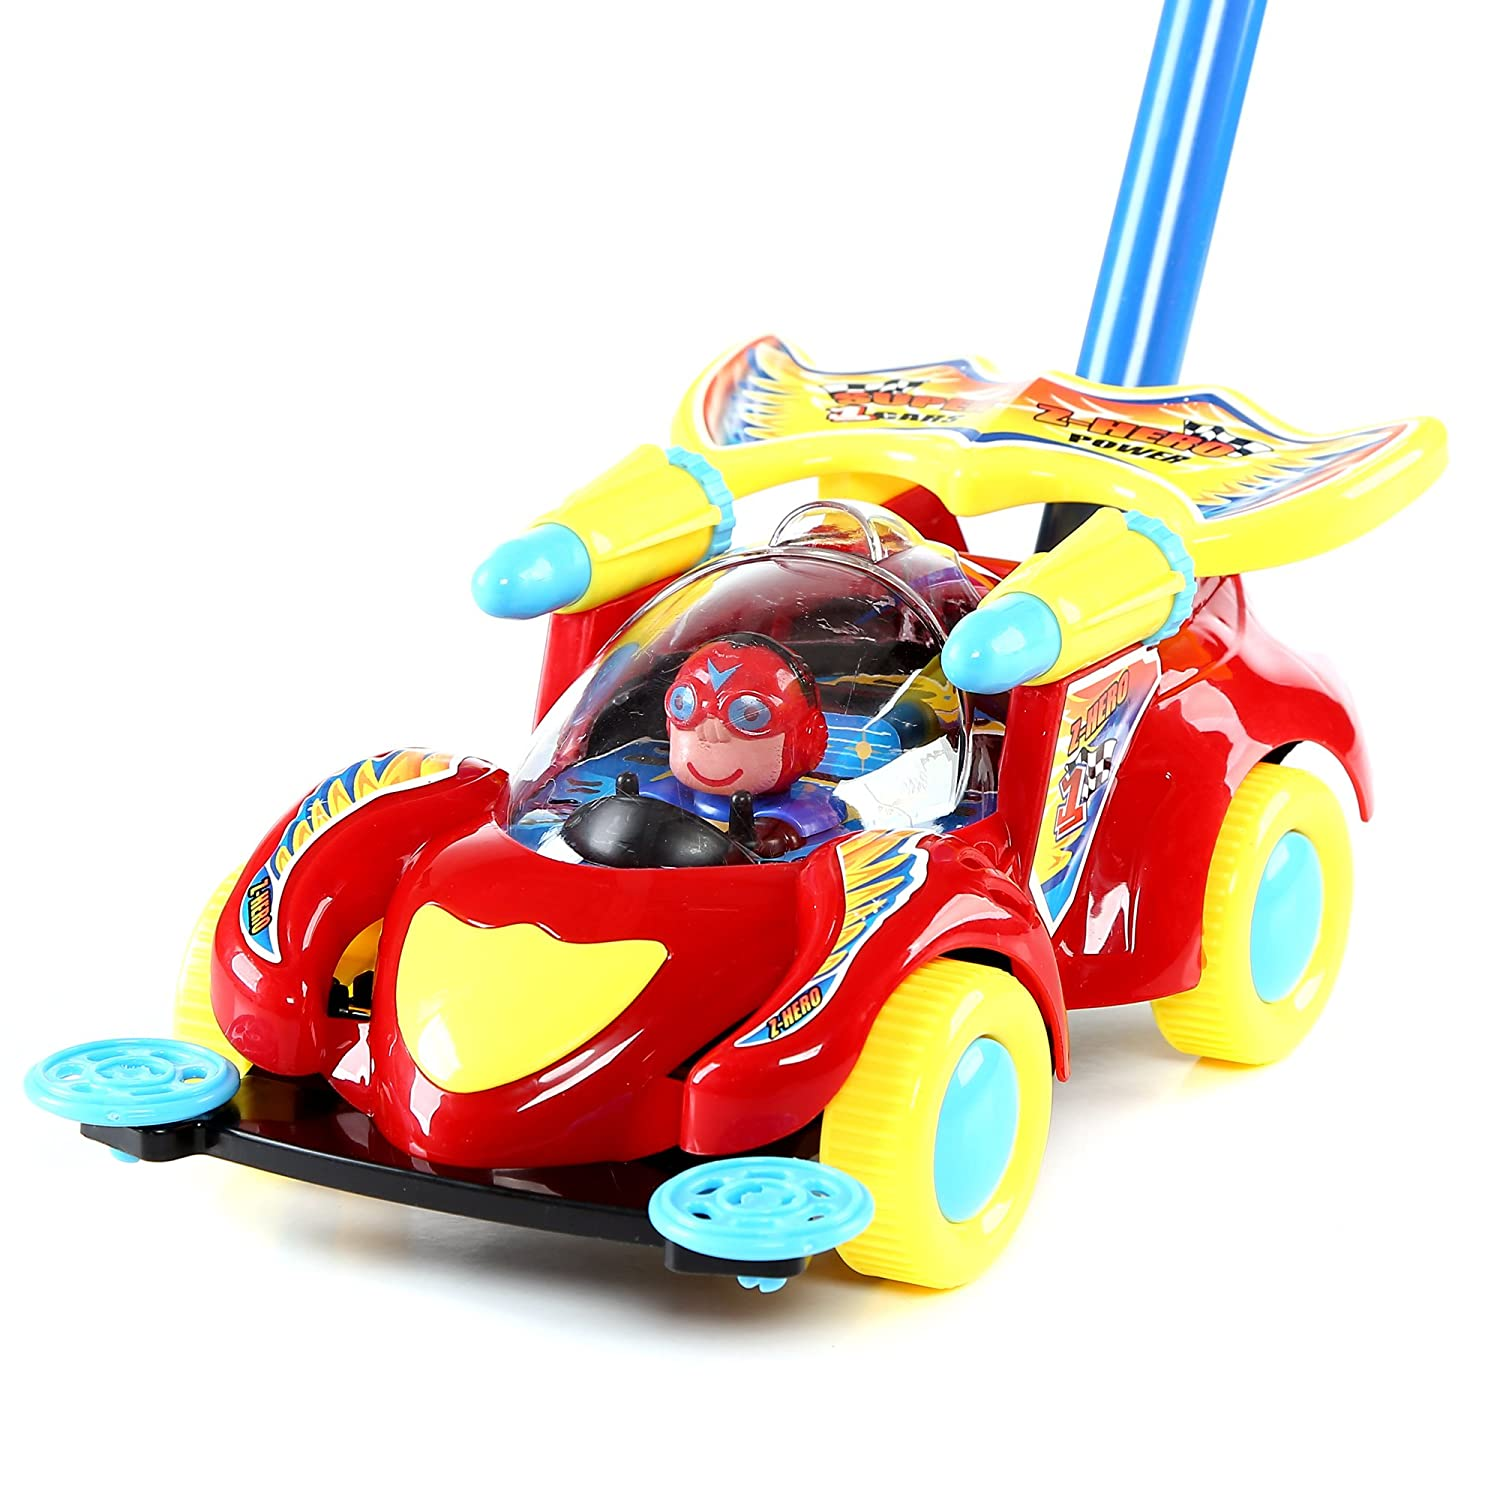 Fun Central BC895 1 Pc 10 Inches Race Car Push Toy Pushing Toy for Kids Outdoor Push Toys Classic Push and Pull Toys Push Around Toy for Baptism Birthday and Party Prizes